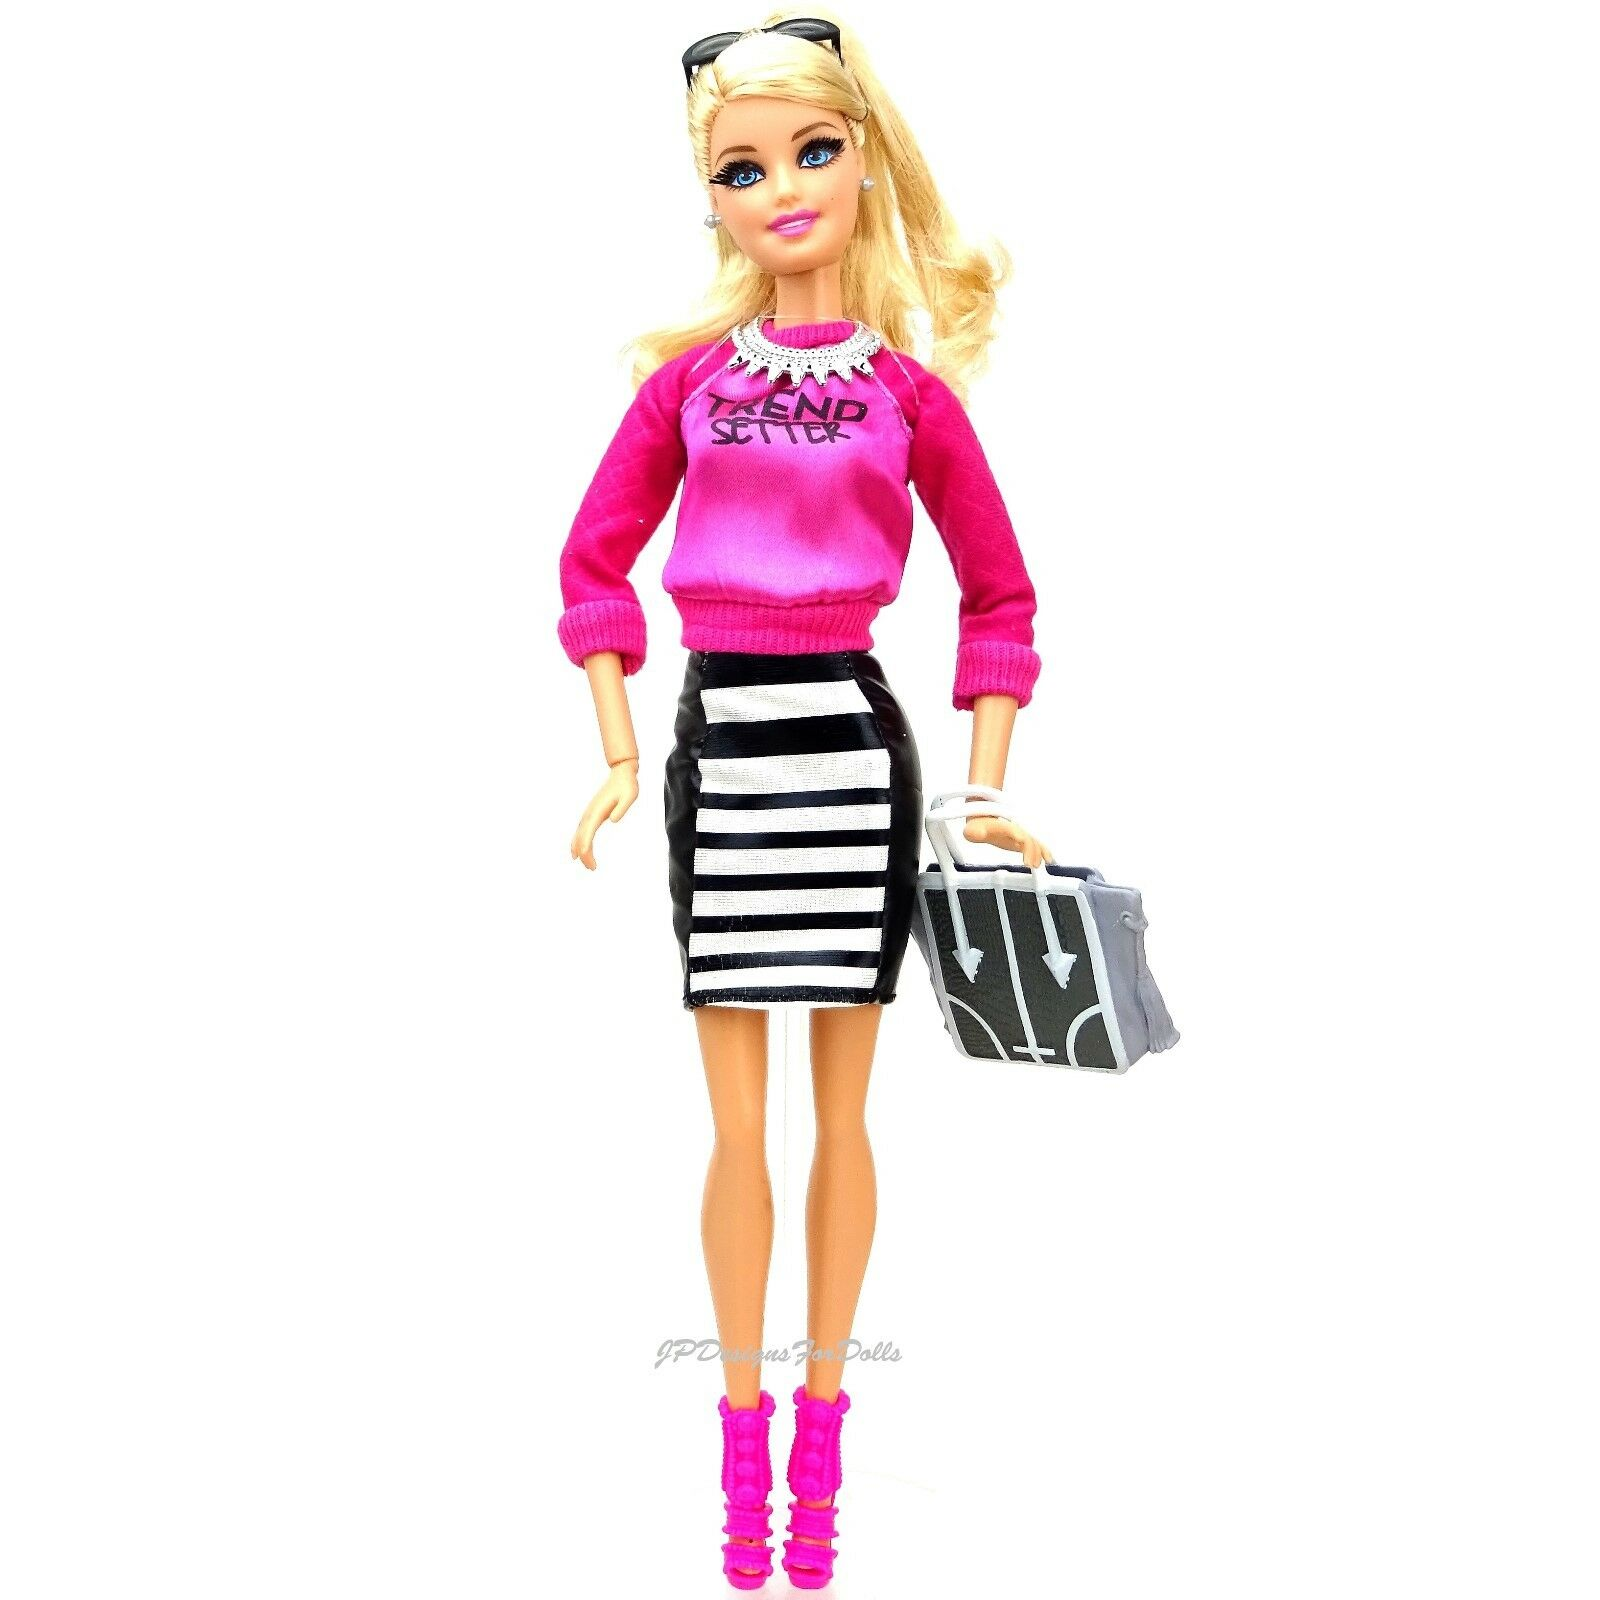 Barbie stile Styling amici Doll (B) (B) (B) trend-setter